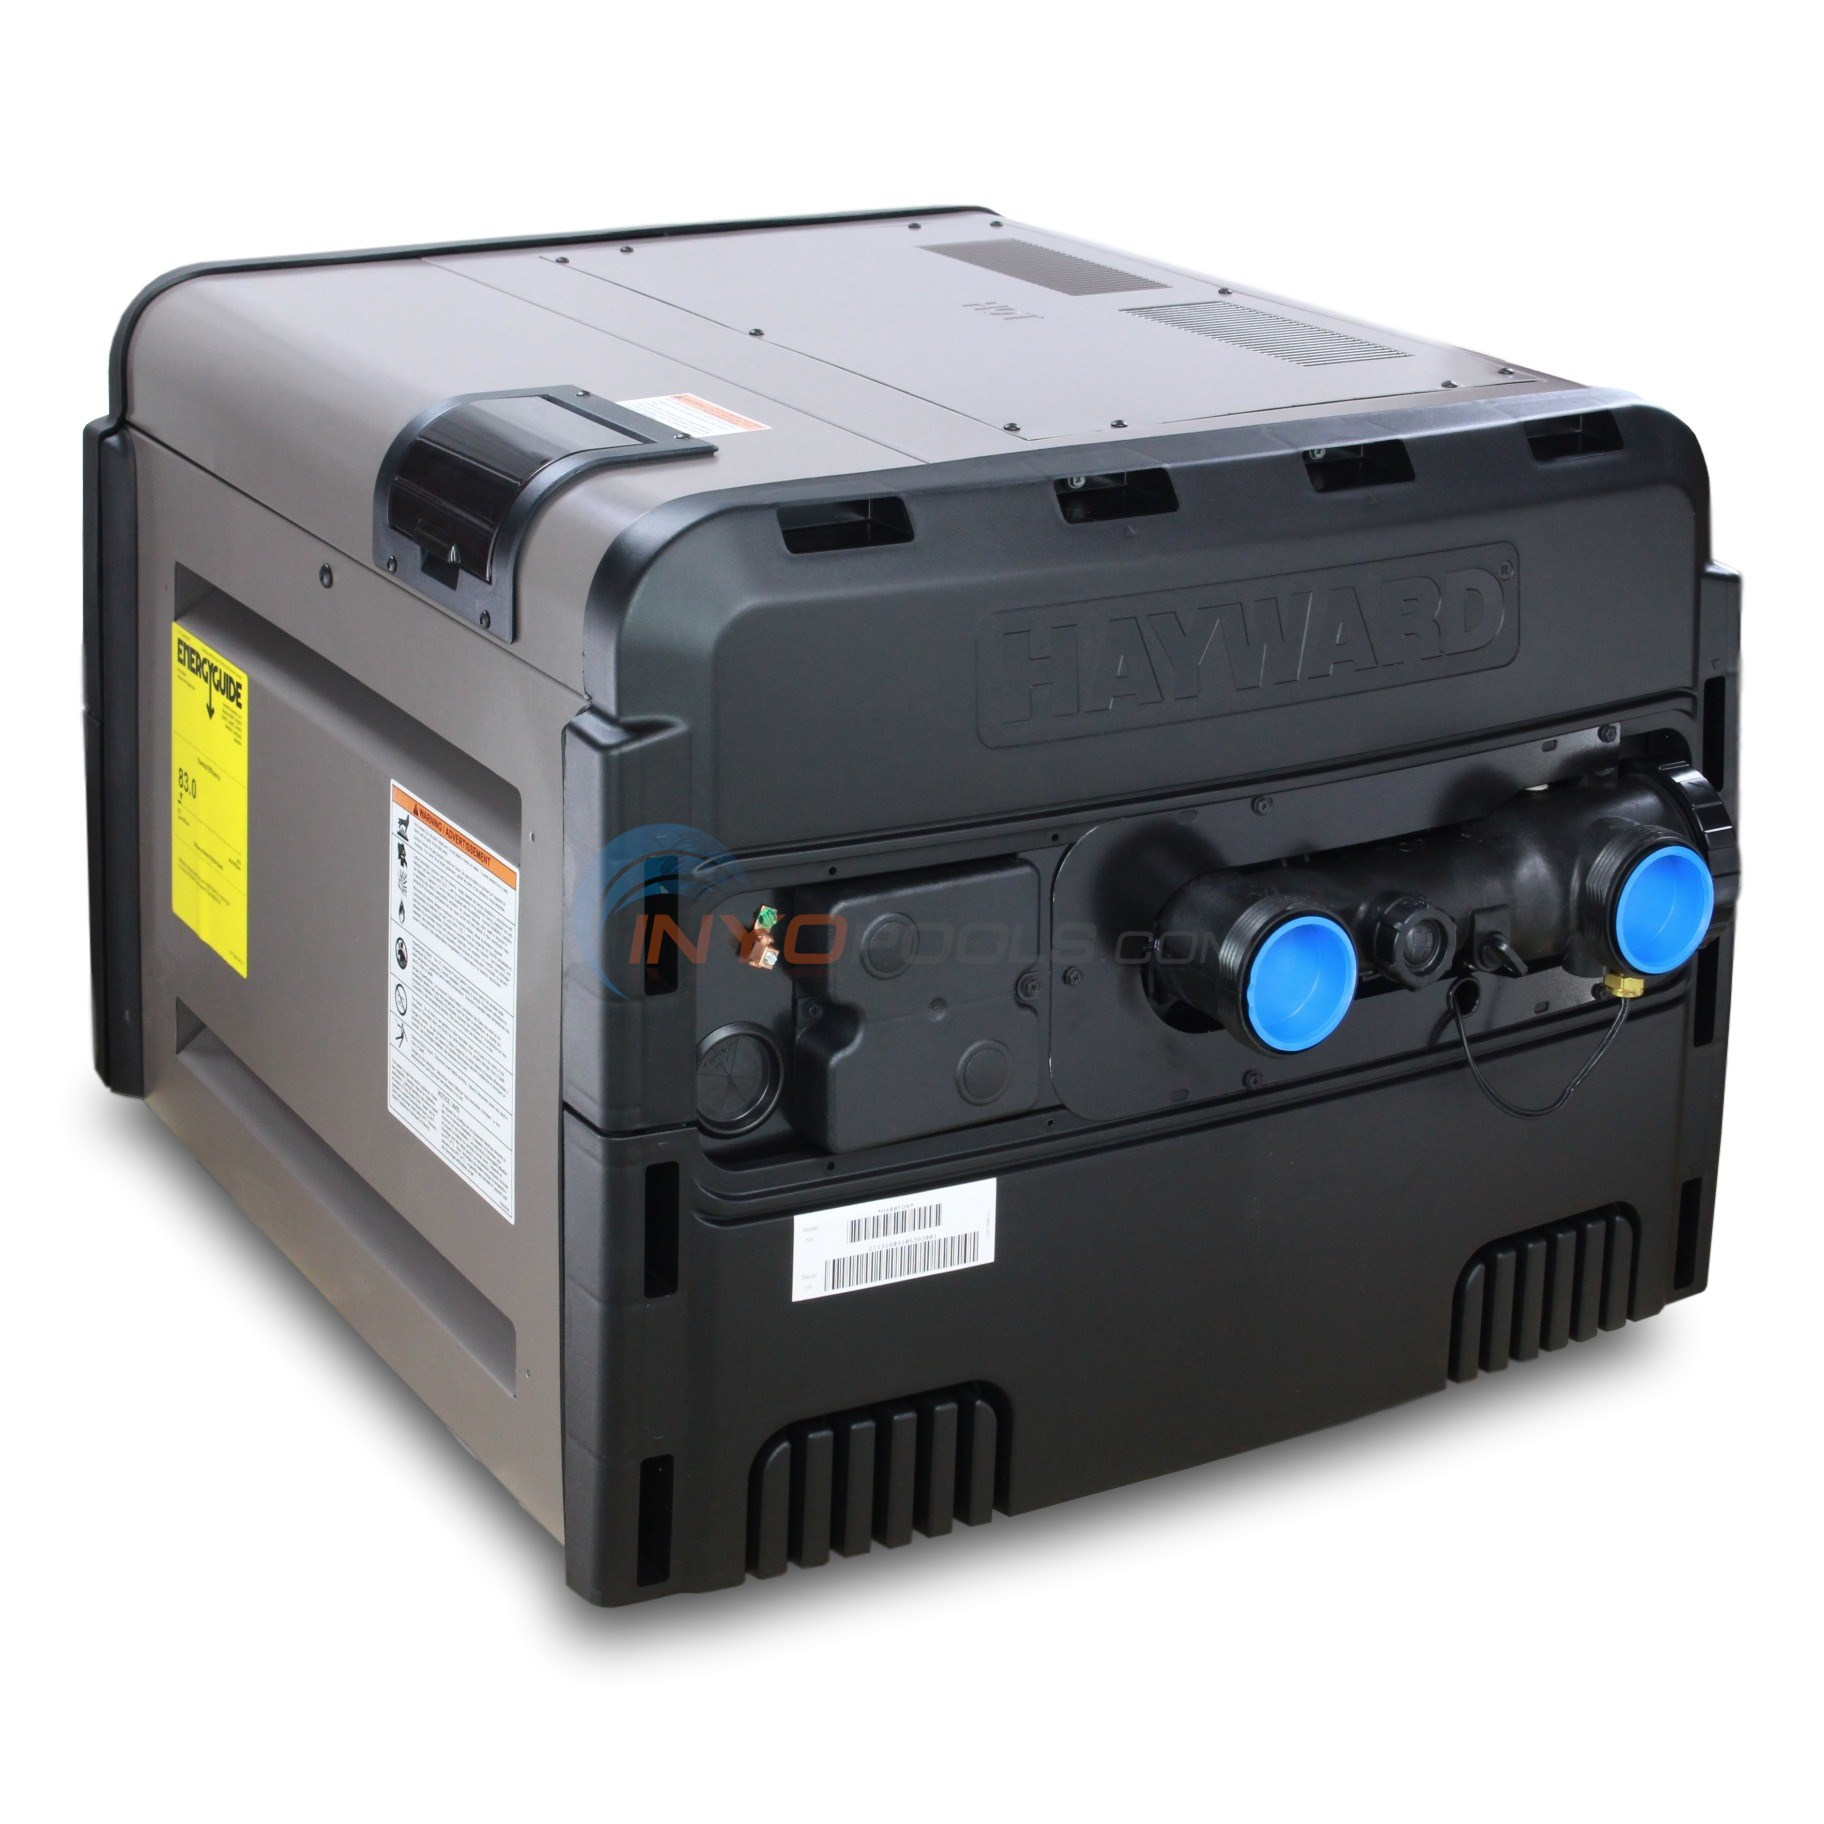 hayward h400fdn 02?format=jpg&scale=both&anchor=middlecenter&autorotate=true&mode=pad&width=650&height=650 hayward pool heater universal h series low nox 200k btu ng AquaLink Wiring-Diagram at alyssarenee.co